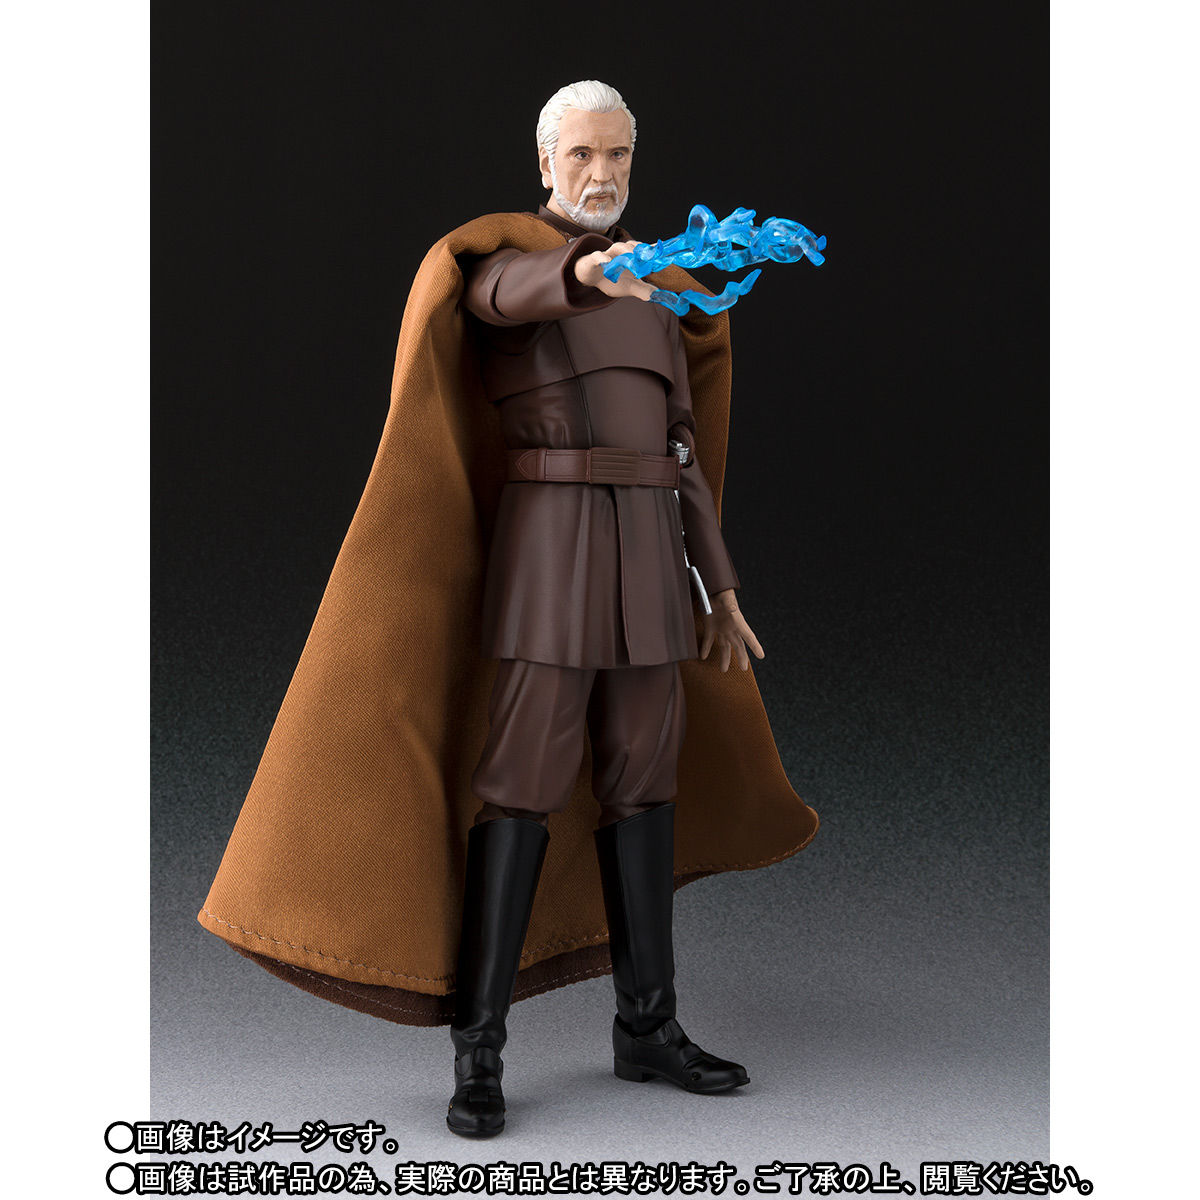 Count Dooku Hot Sale Bandai Shf Figuarts Star Wars Episode 3 Revenge Of The Sith